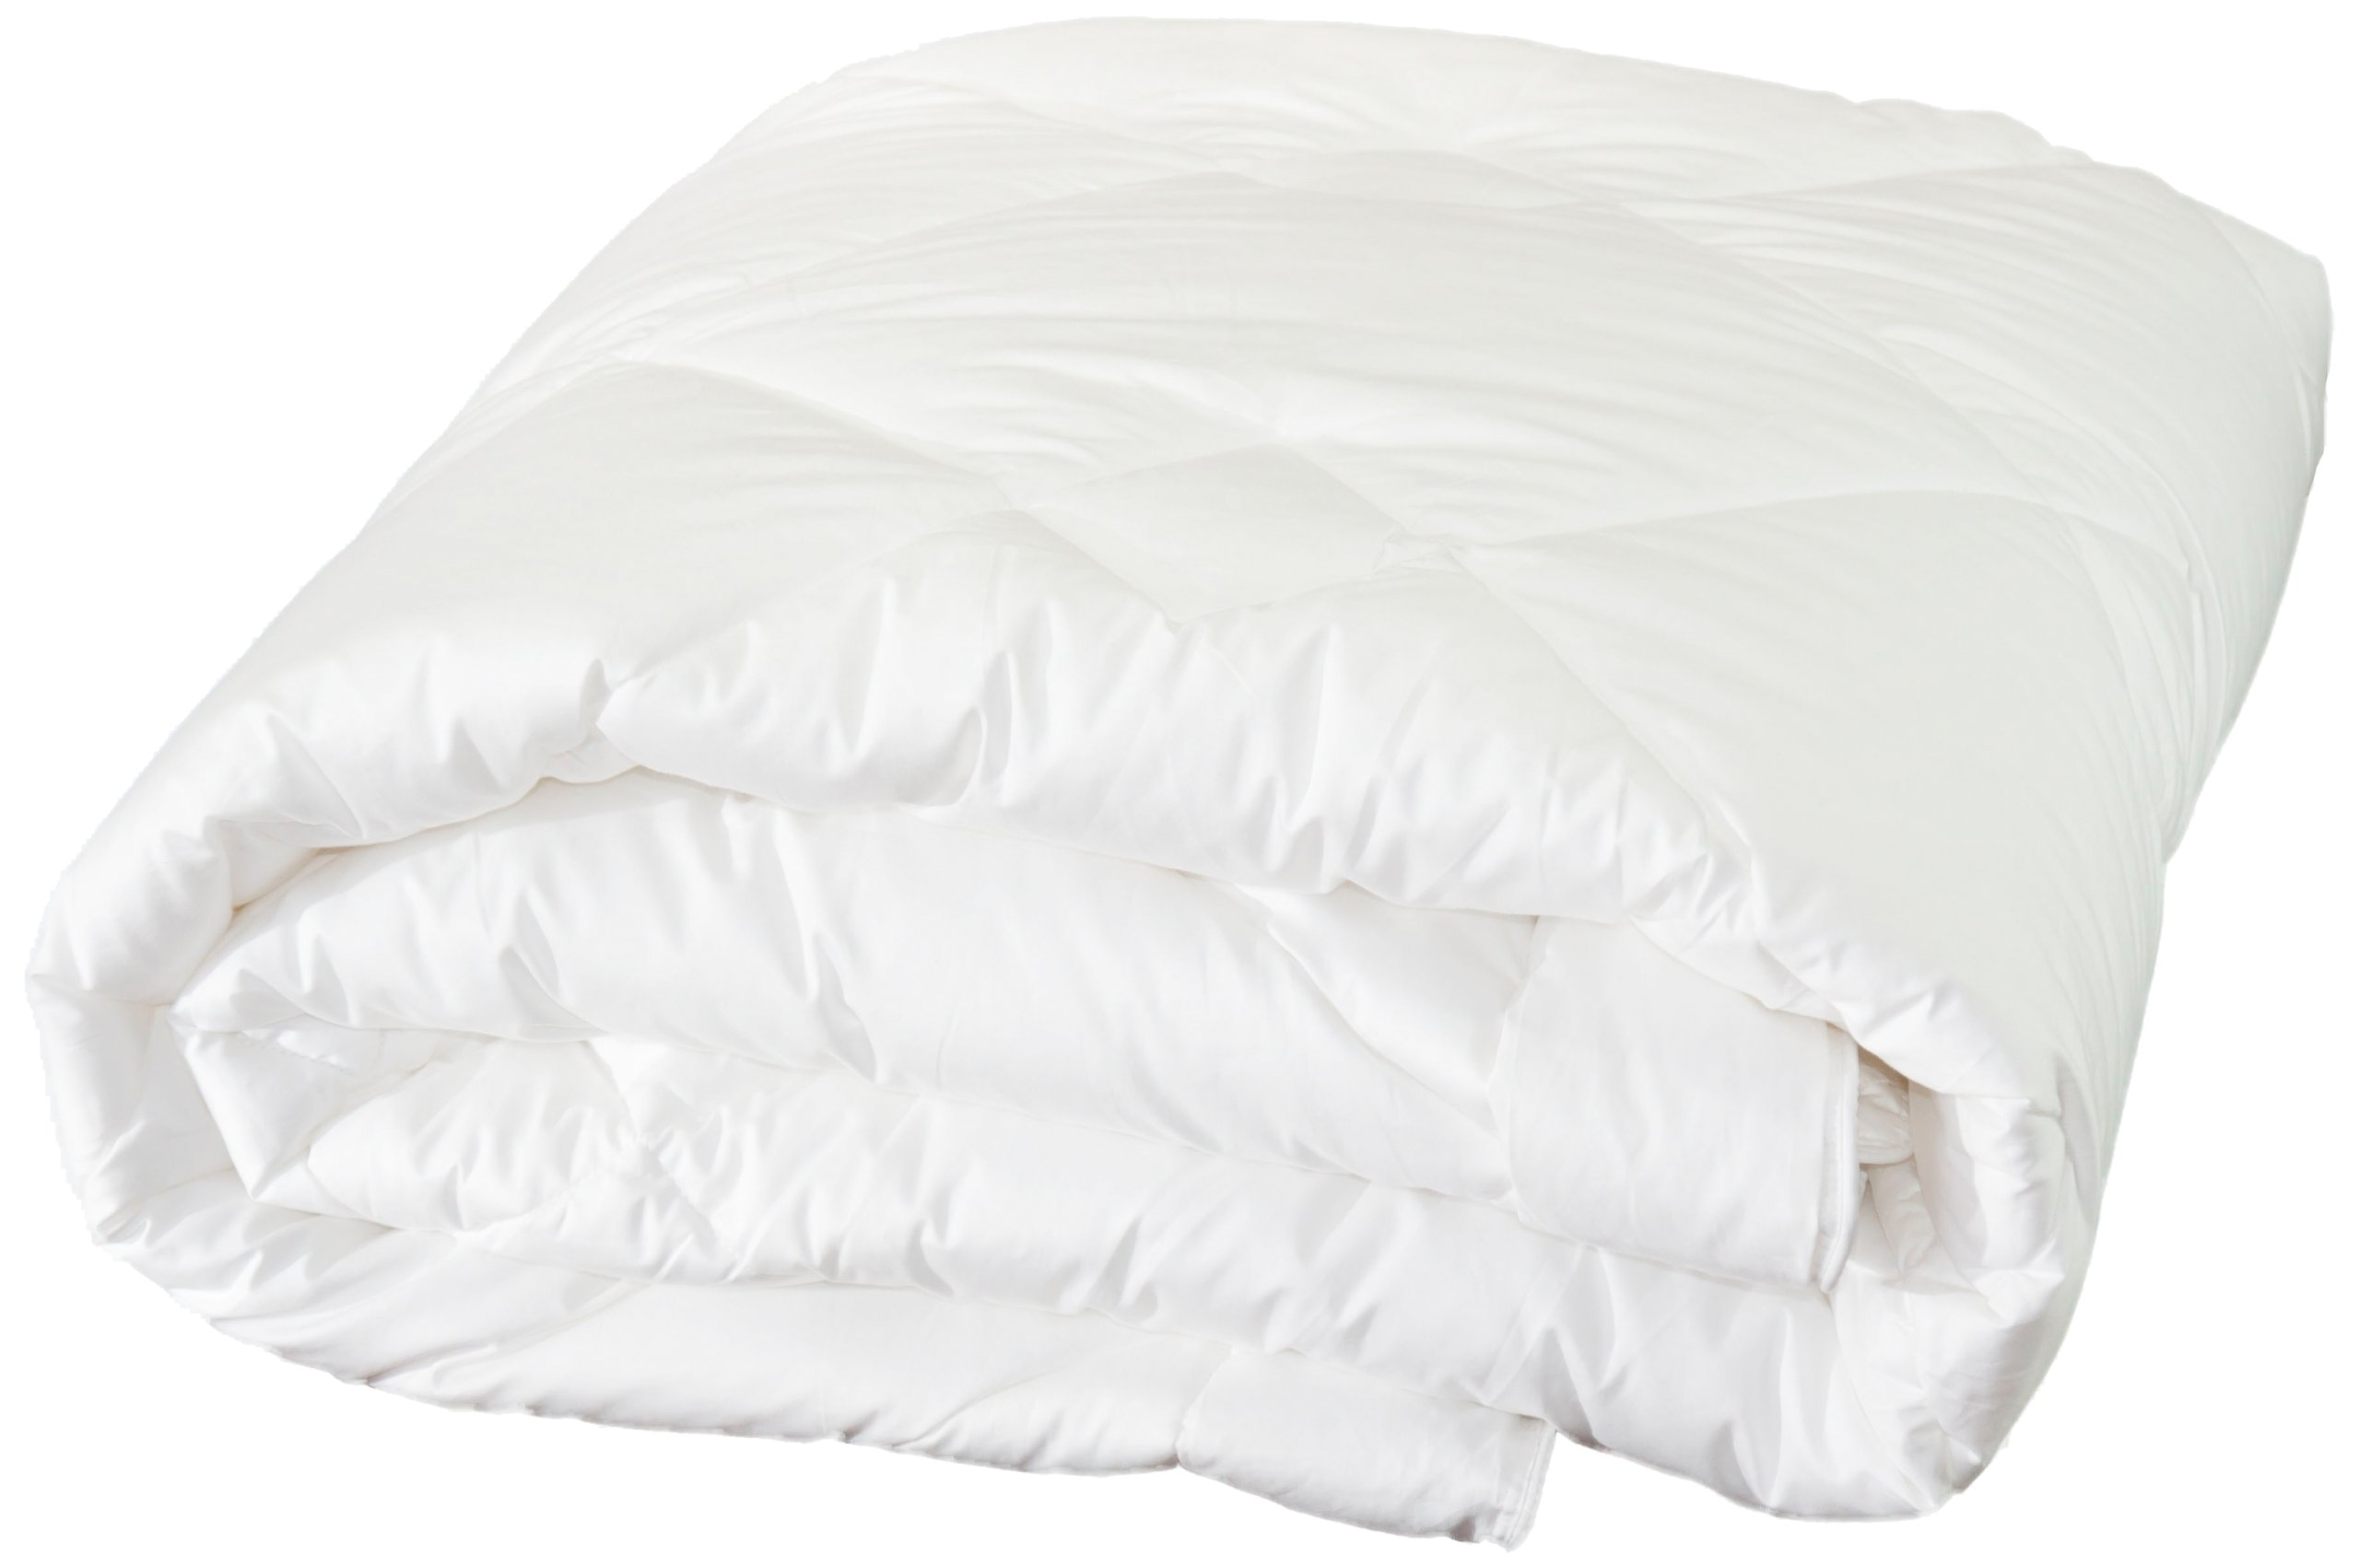 review duvet feather comfortable top pacific filled down outlet most silk mulberry preeminent coast european bedding costco quilt comforters hotel platinum cover covers comforter